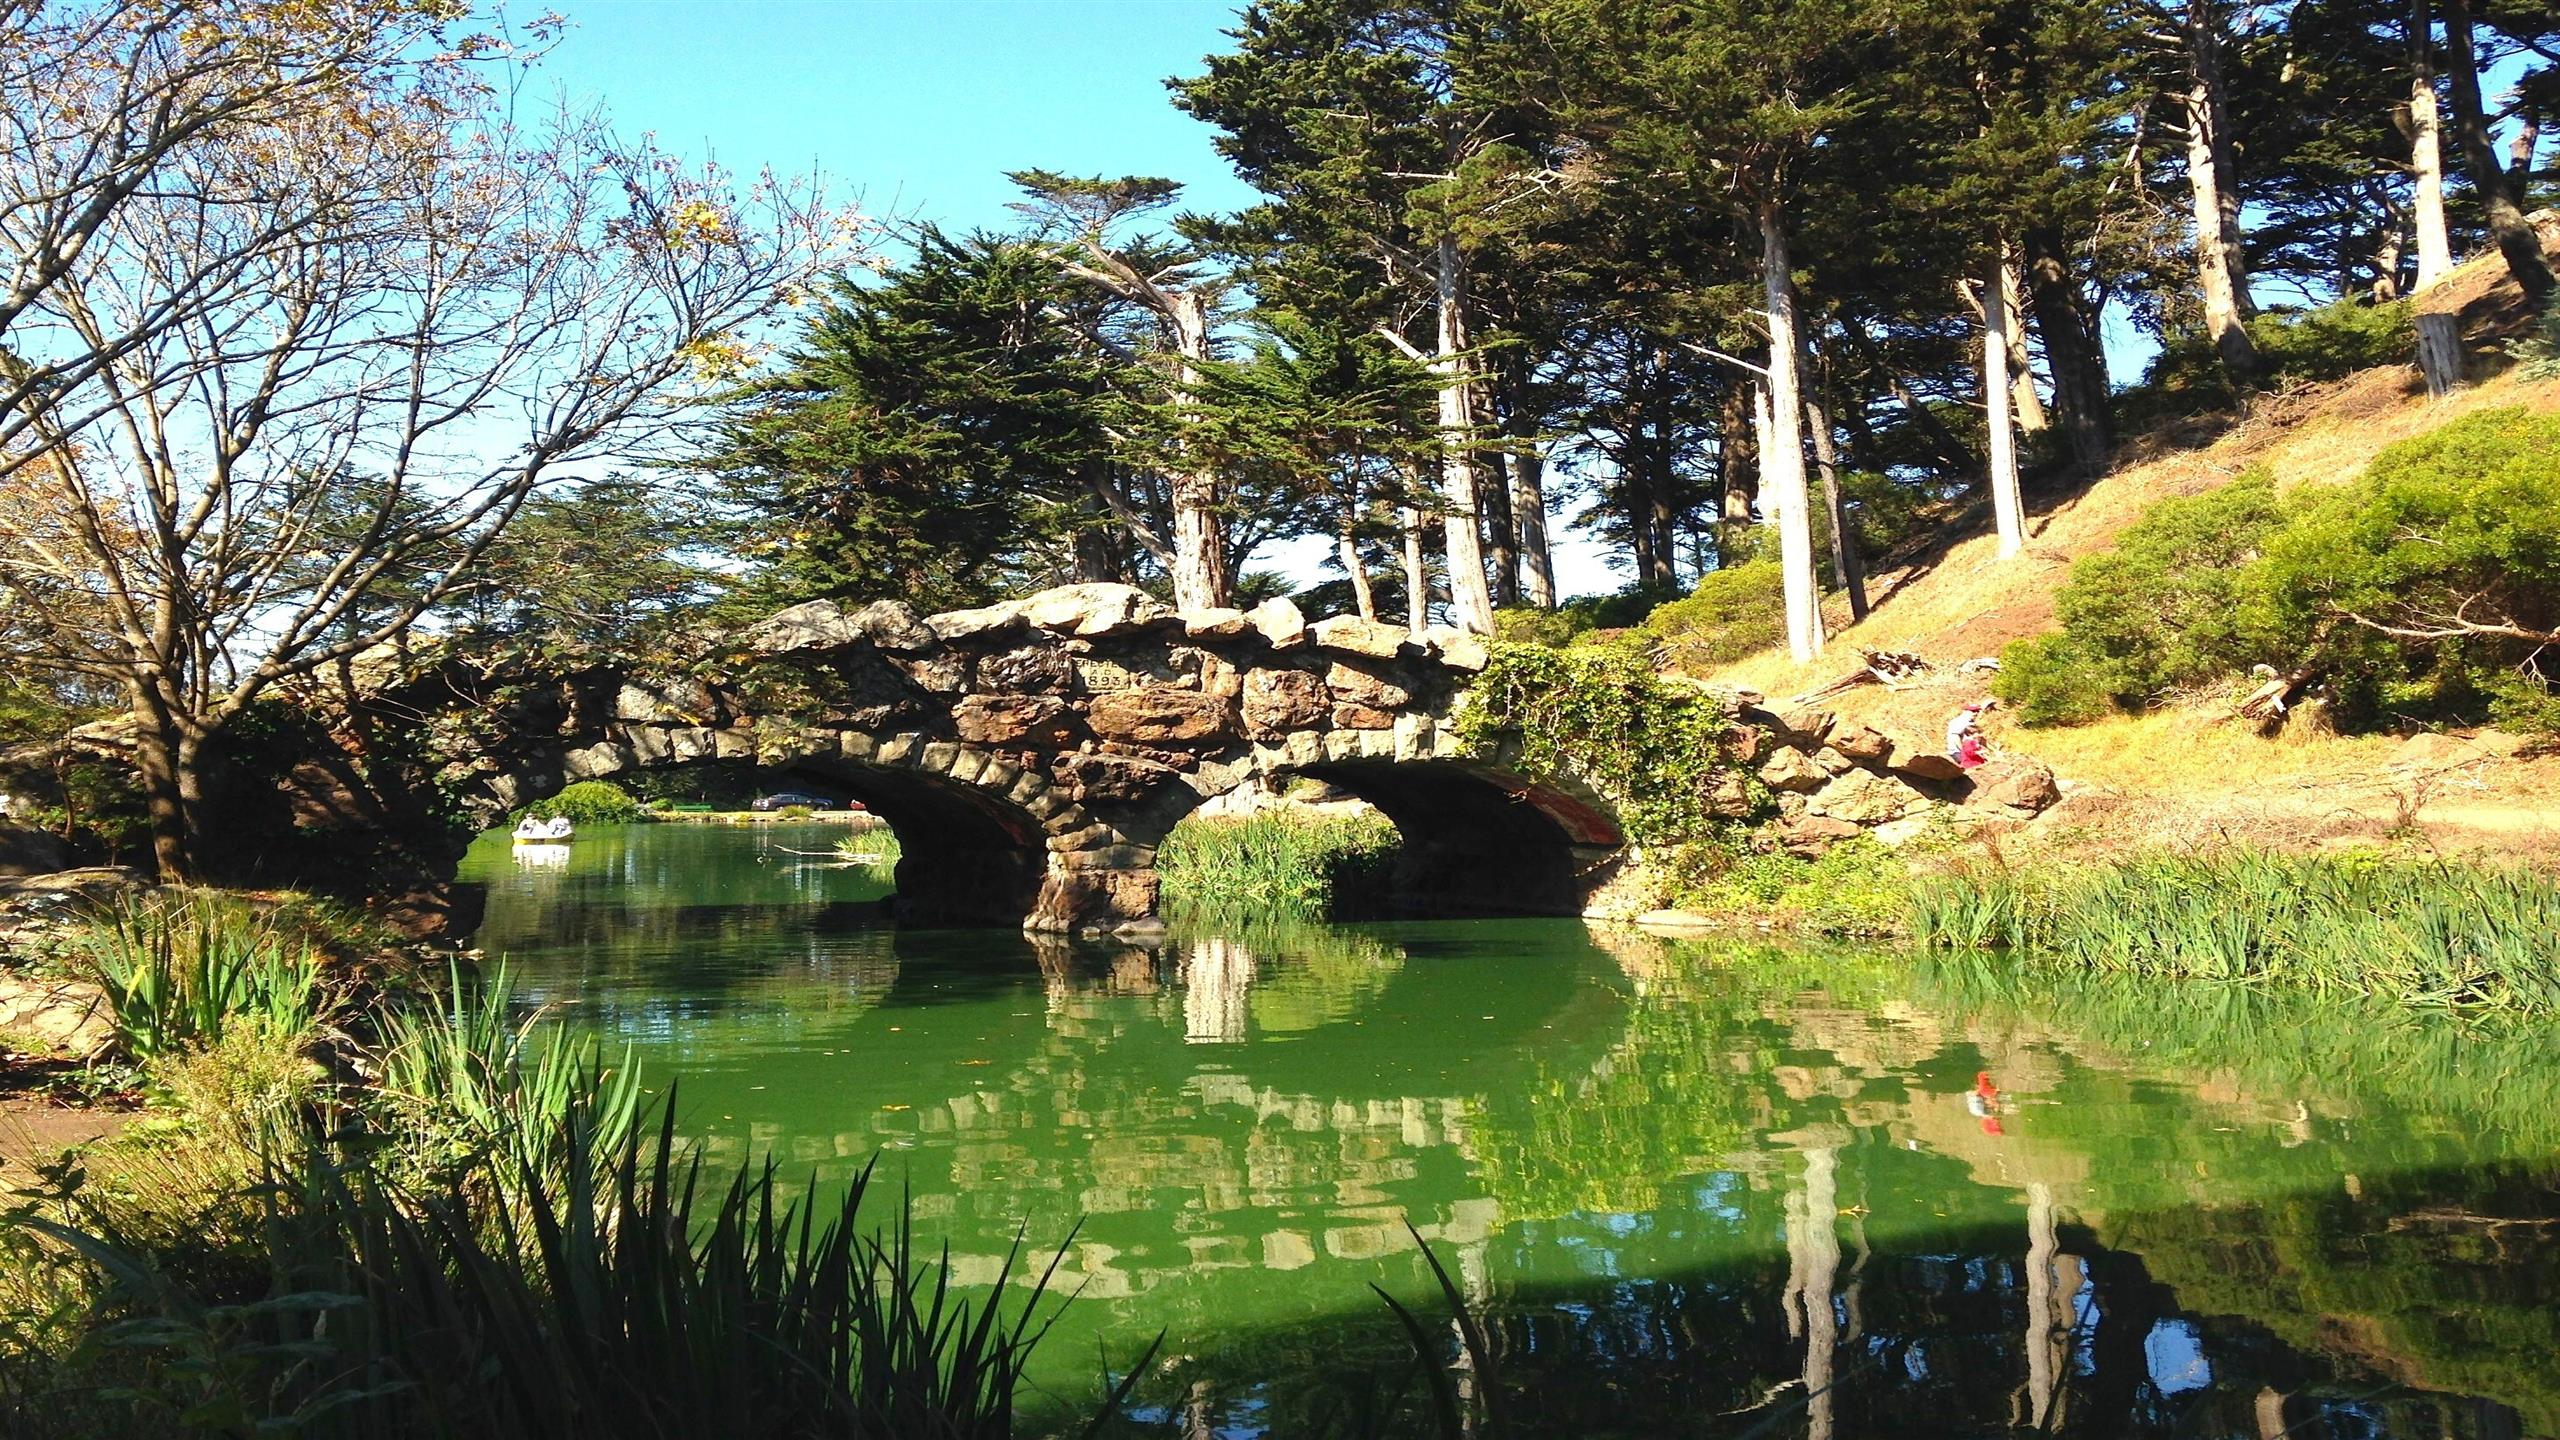 2560x1440 Beautiful Travel Place Golden Gate Park Park in San Francisco California Photo